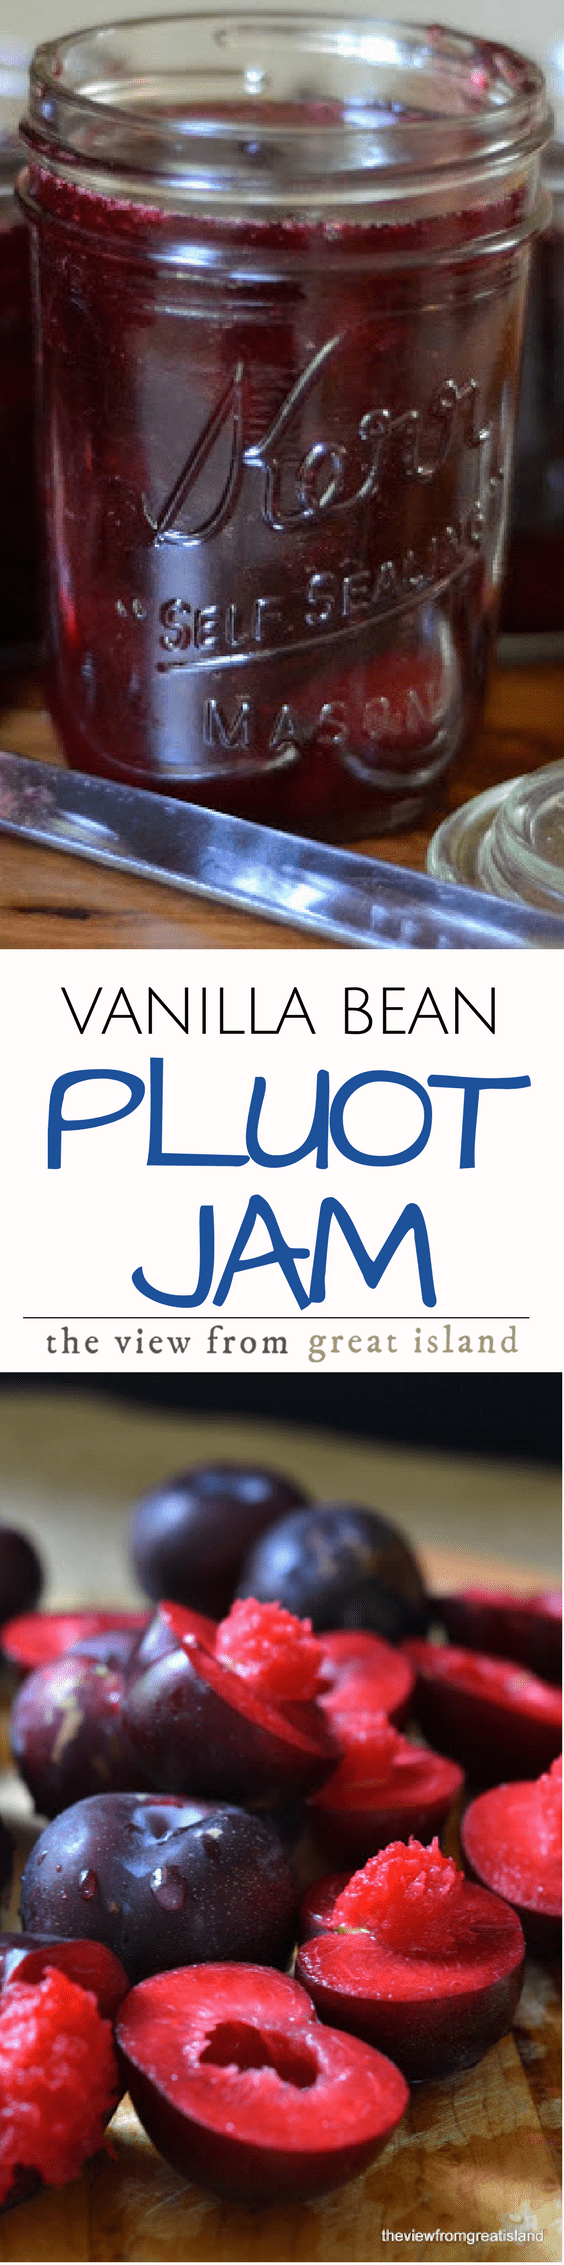 Vanilla Bean Pluot Jam Recipe ~ this easy small batch refrigerator jam is made with flavor packed pluots with a hint of vanilla bean for depth ~ it's going to become your new favorite! | preserves | stone fruit | refrigerator jam | recipe